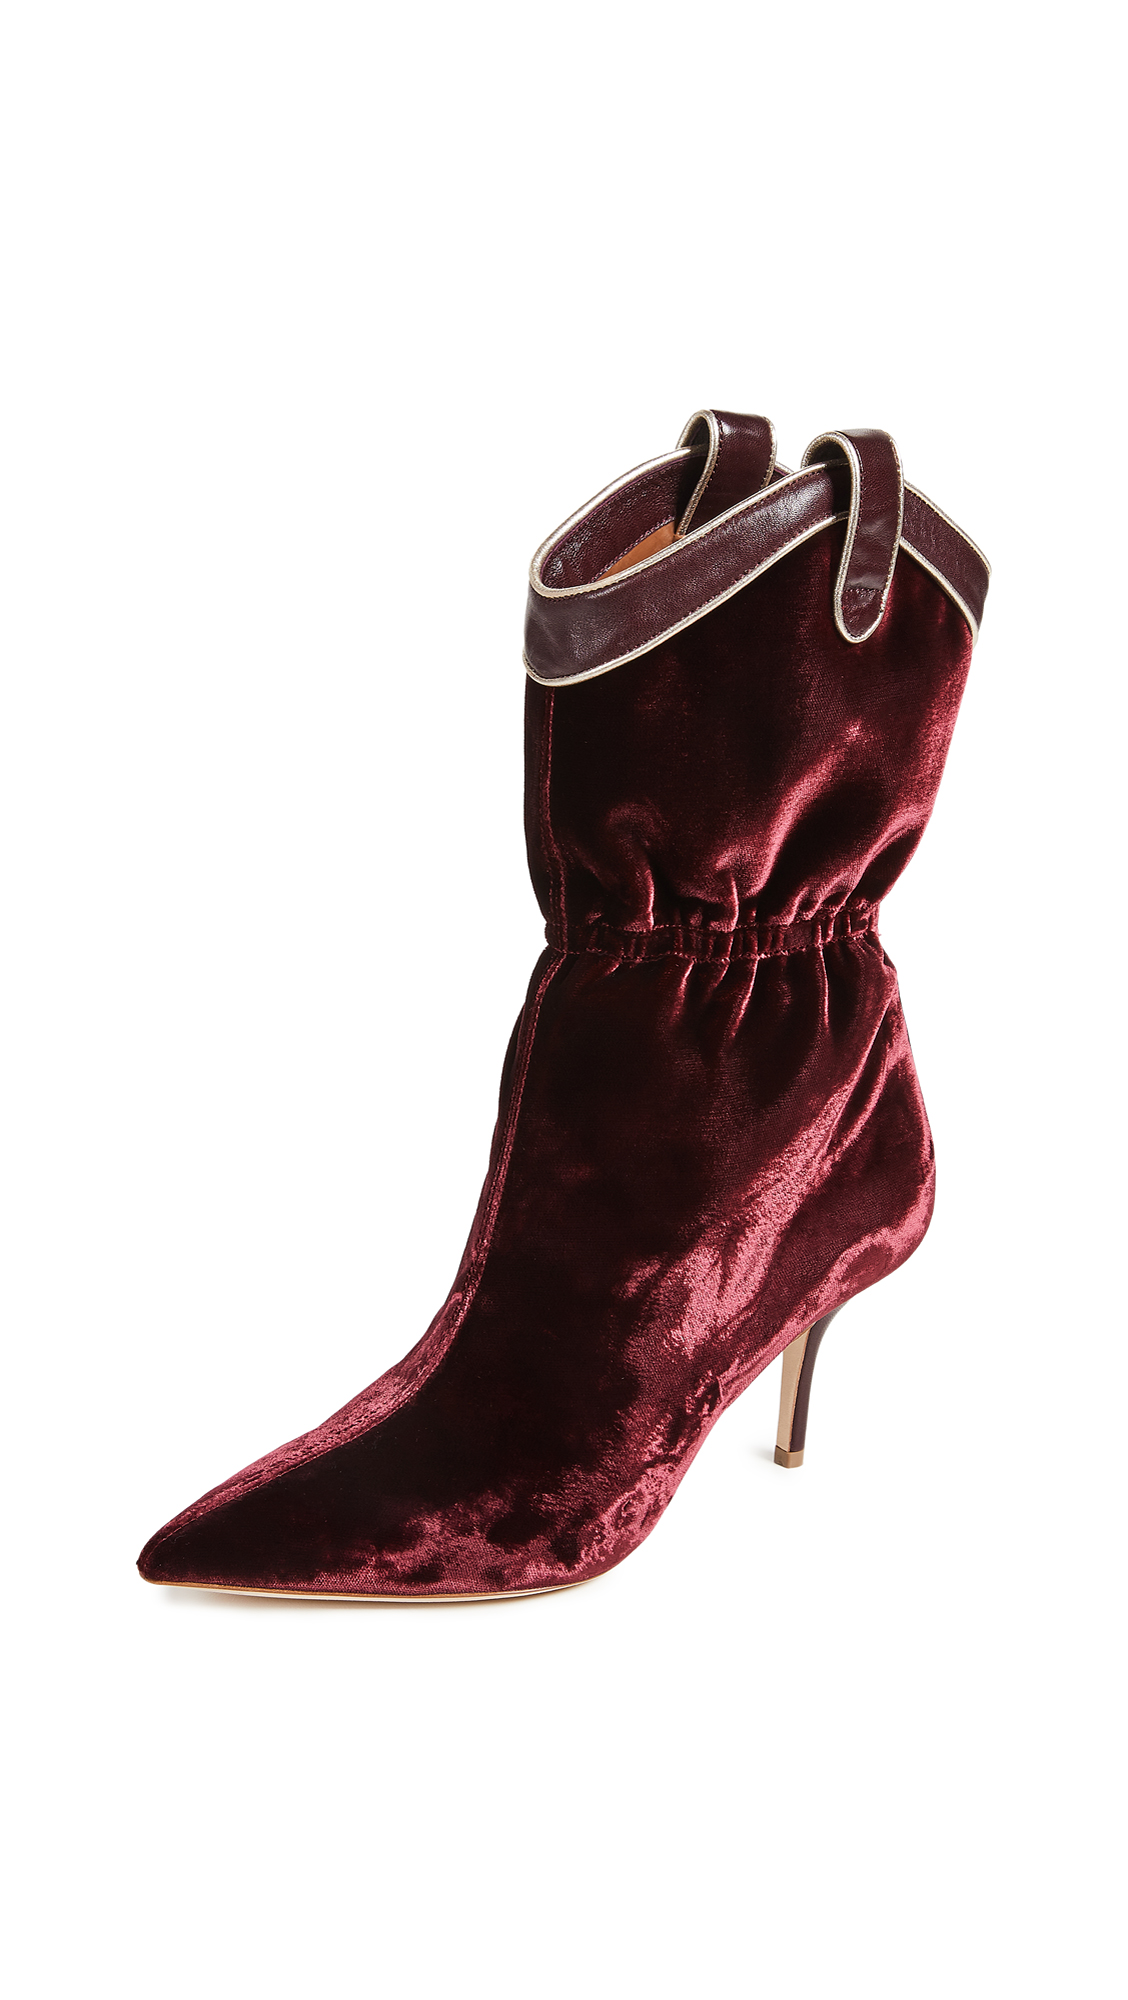 Malone Souliers by Roy Luwolt Daisy Boots - Burgundy/Wine/Platino